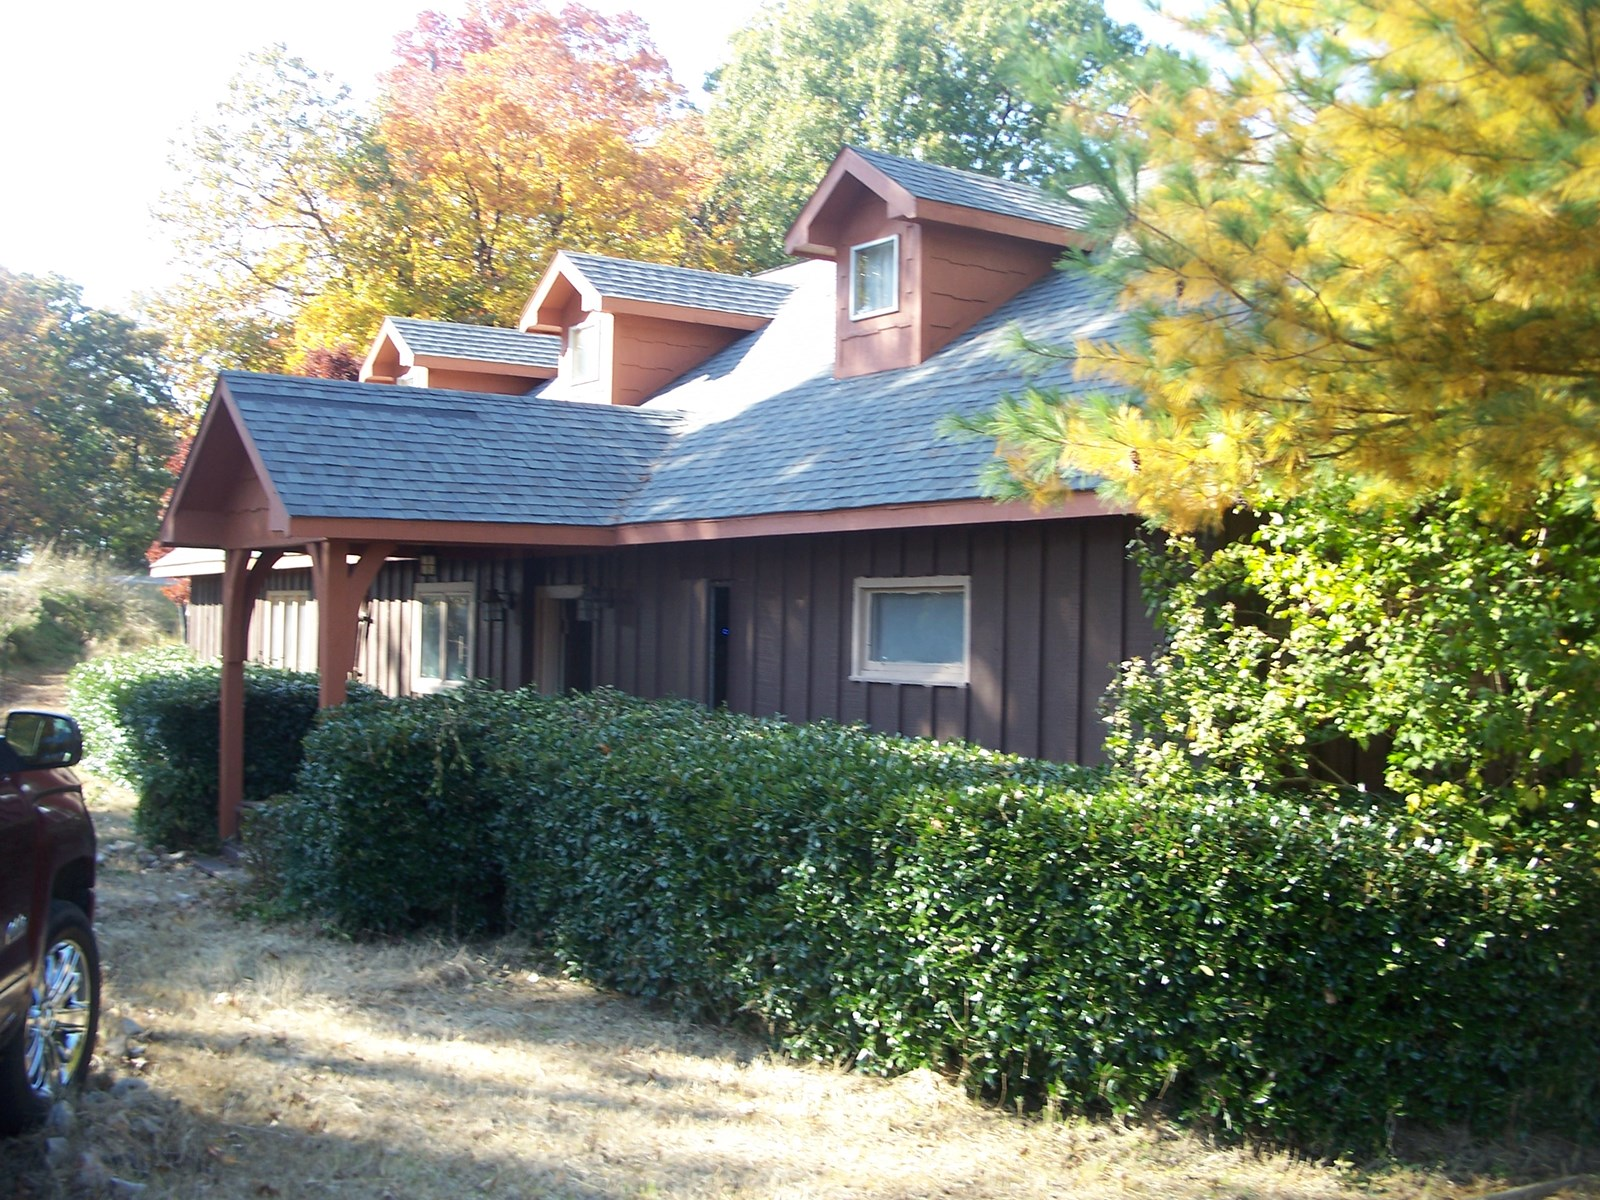 AUCTION -- SOUTH GRAND LAKE OKLAHOMA HOME ON 3.5 ACRES